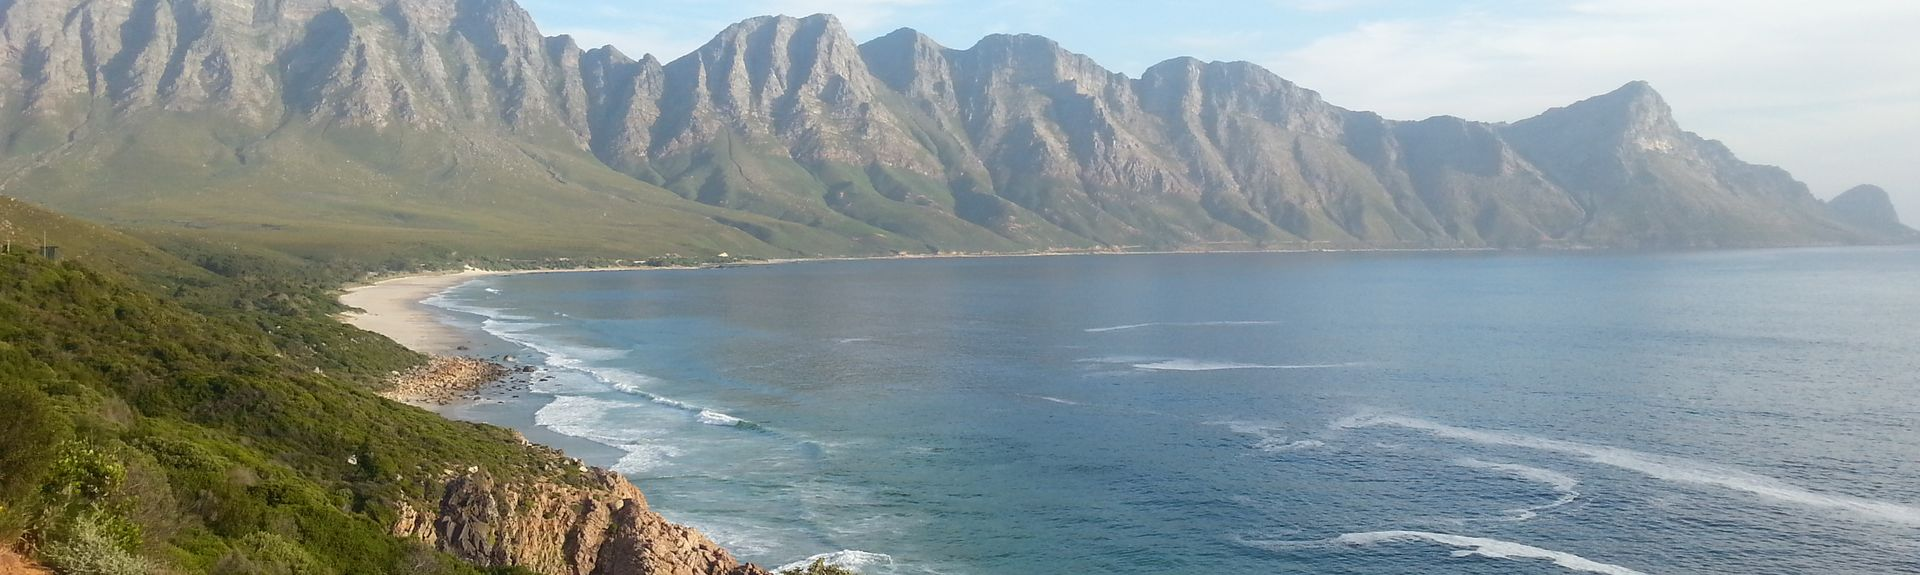 Overberg District Municipality, Western Cape (province), South Africa